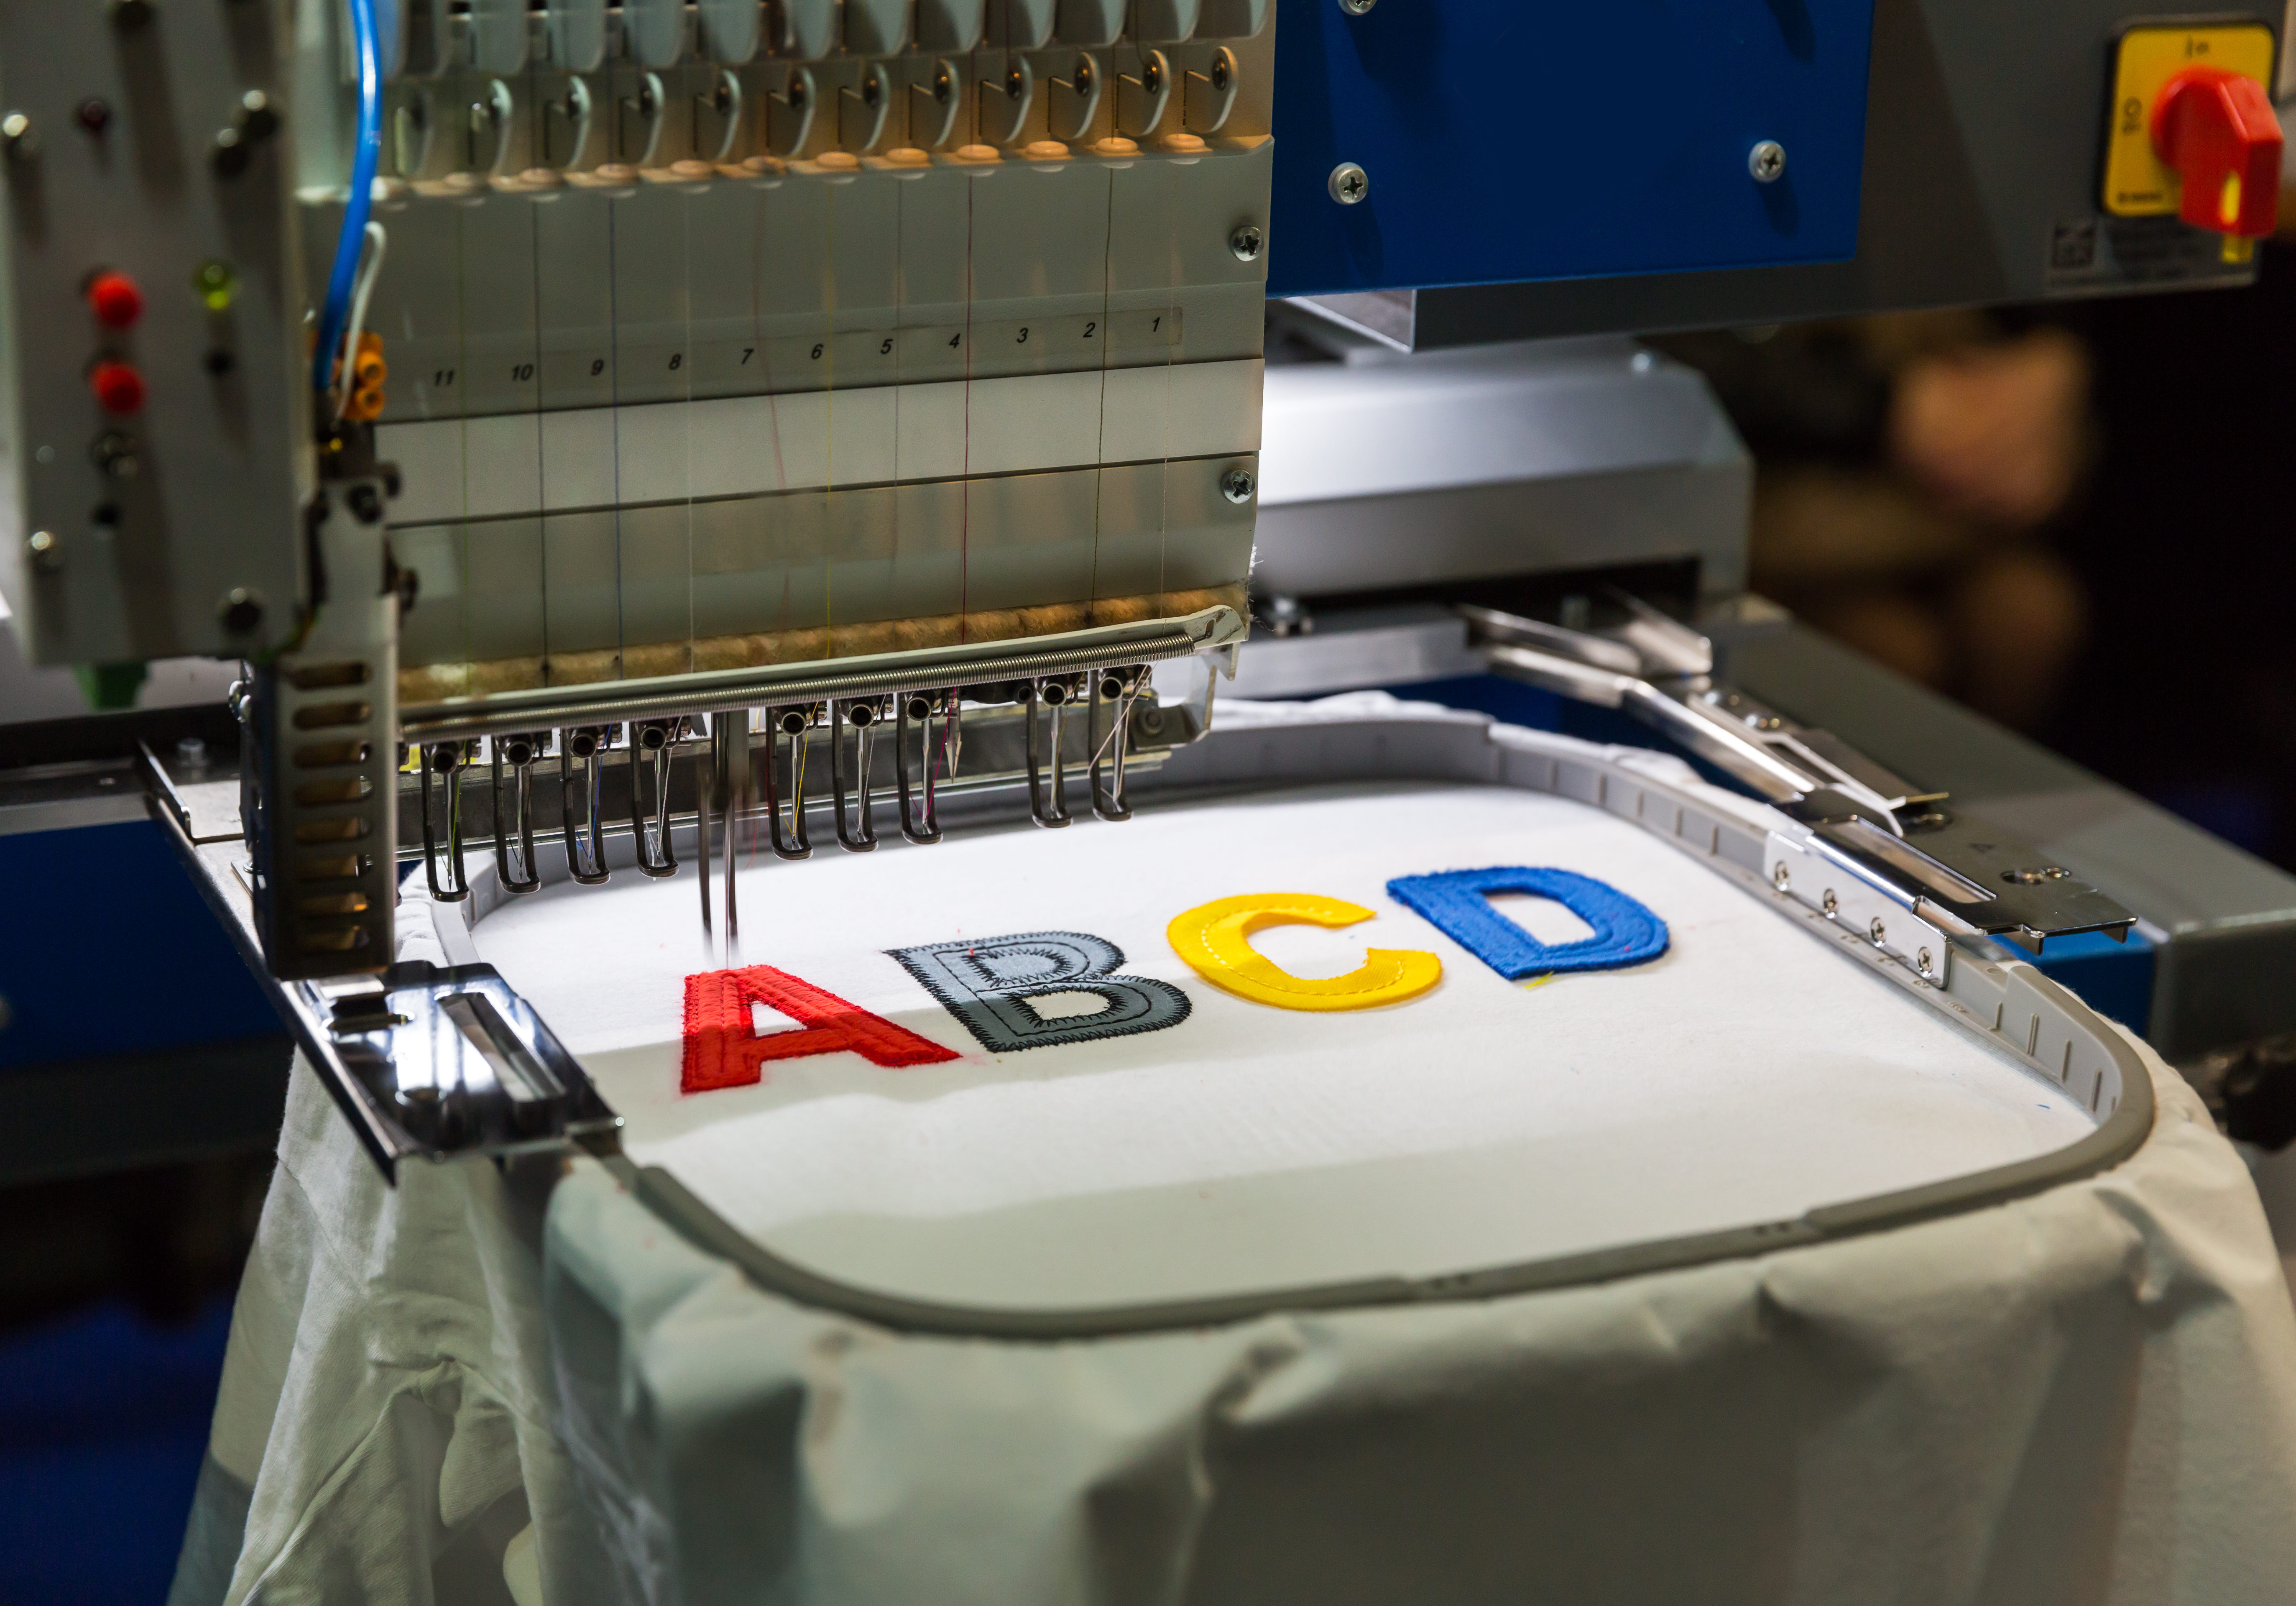 Professional sewing machine embroidery color letters. Textile fabric, nobody. Factory production, sew manufacturing, needlework technology